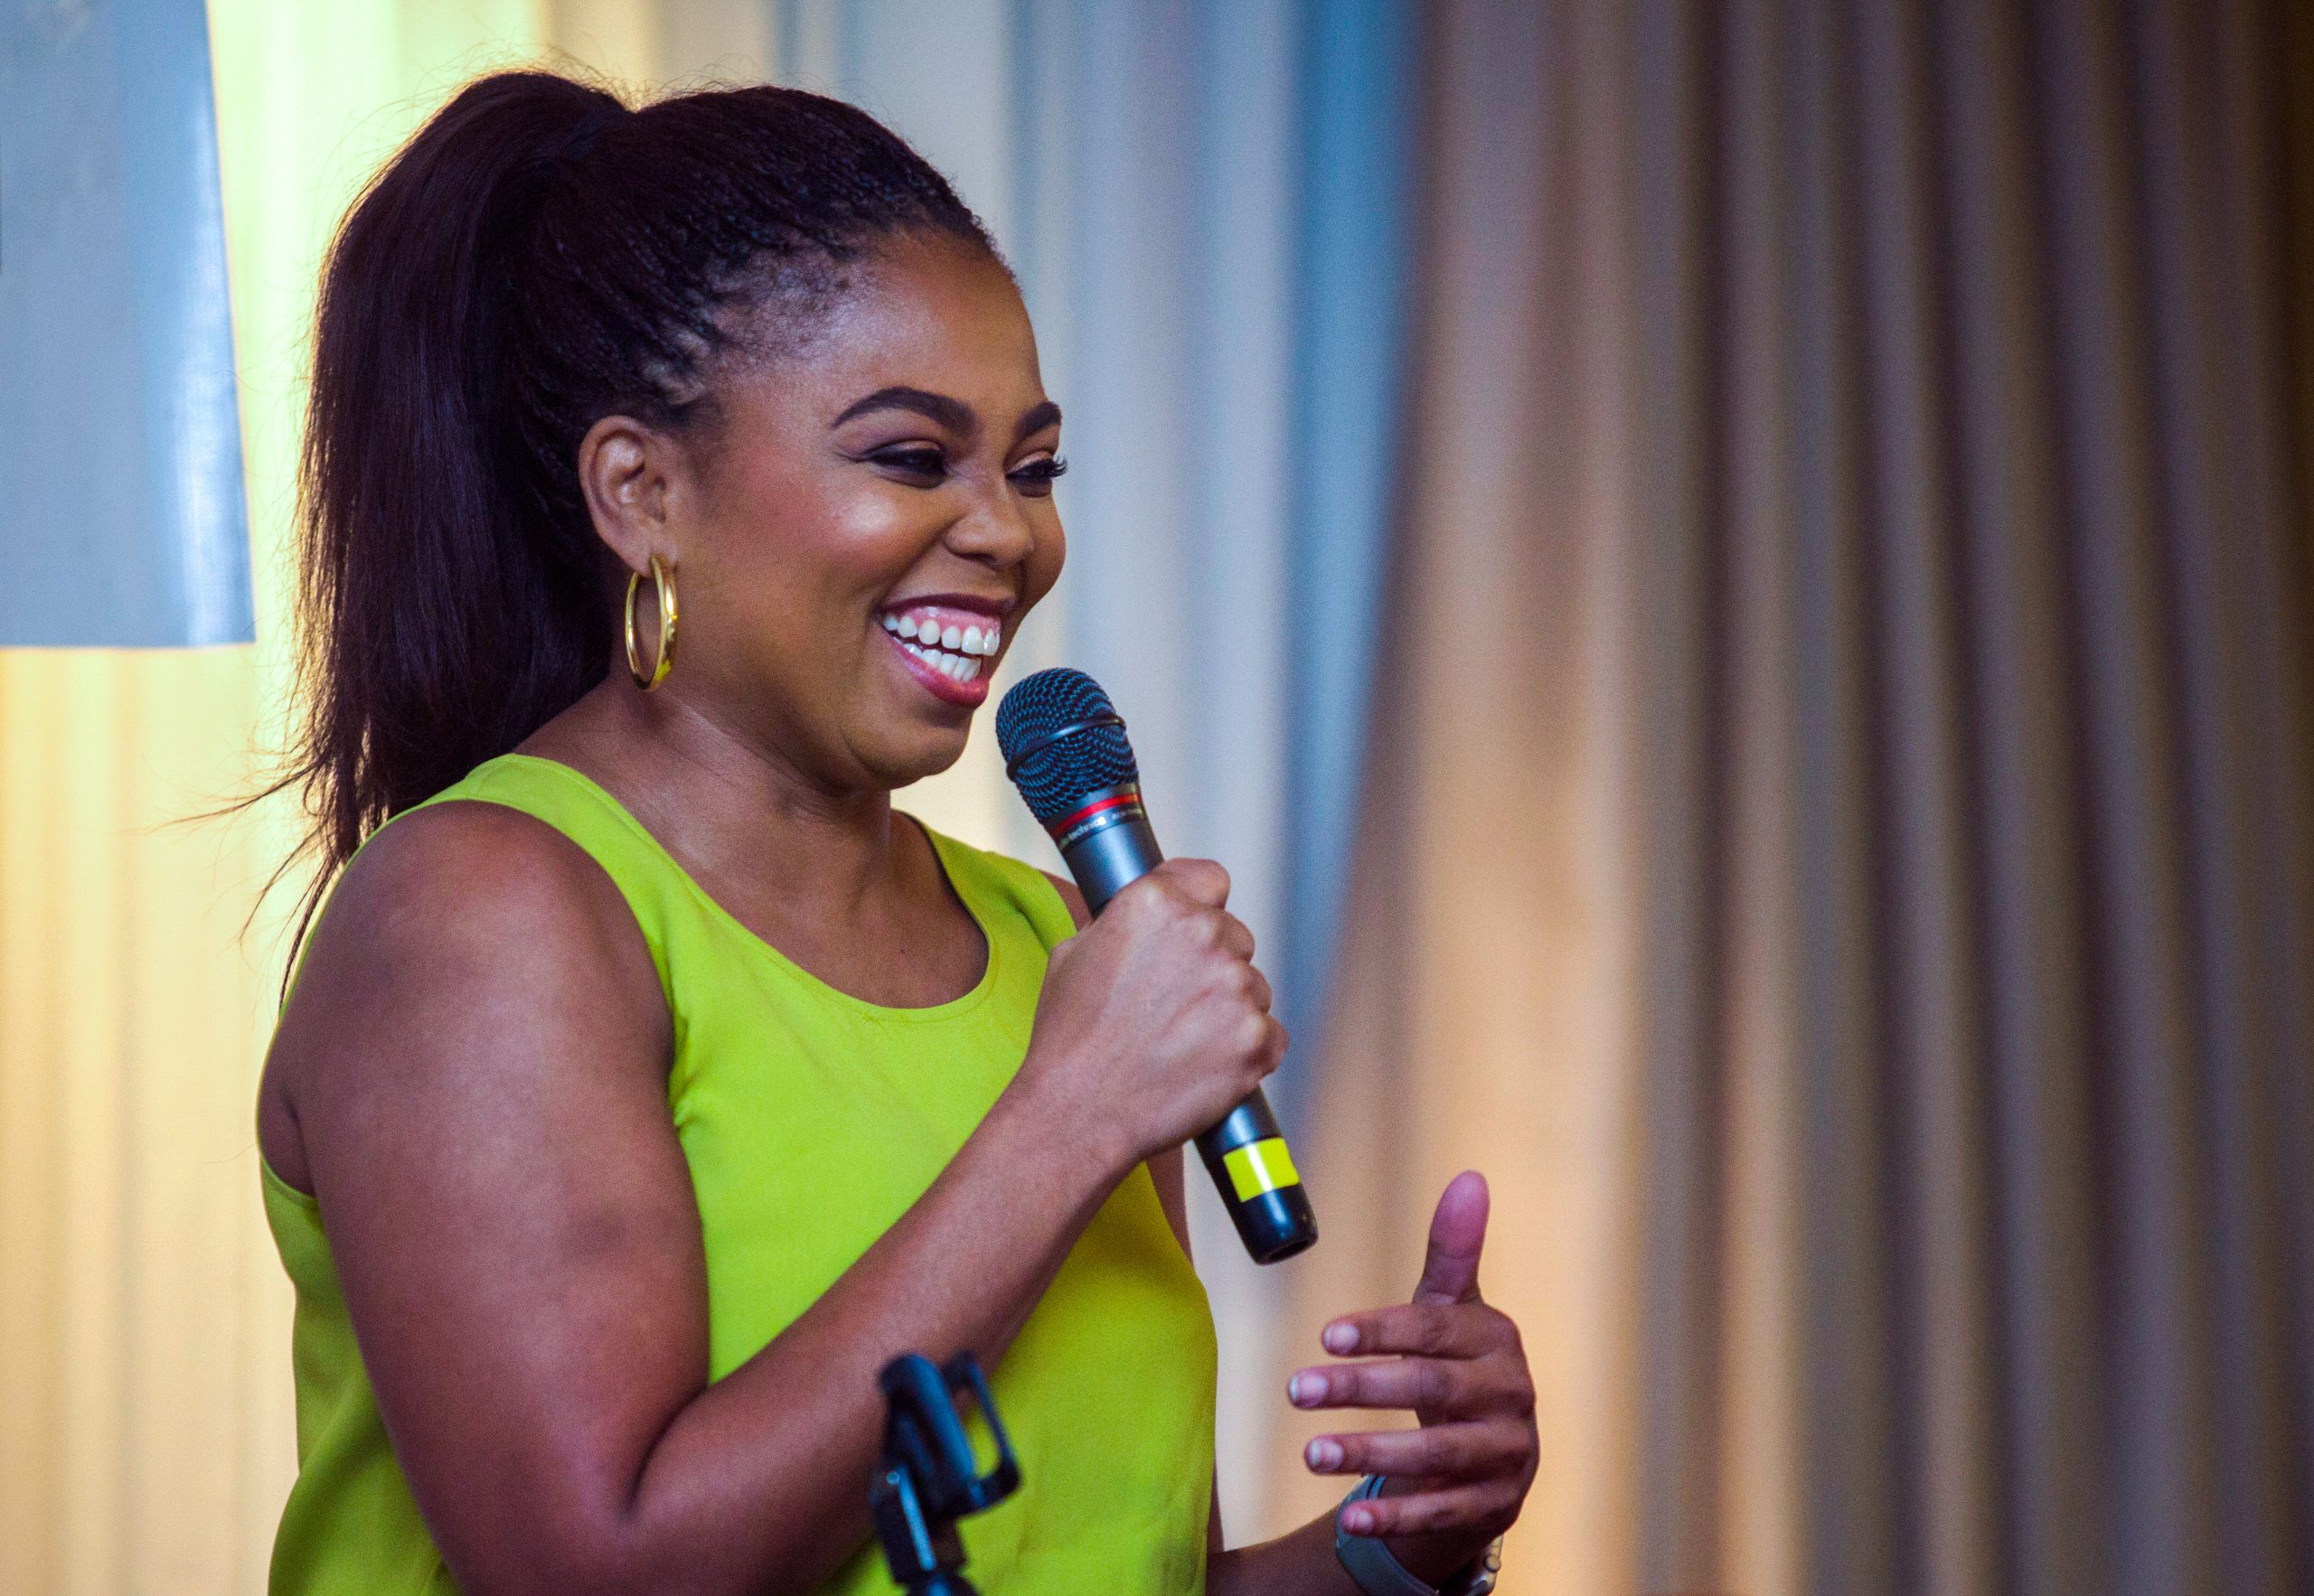 Jemele Hill, an award-winning sports journalist, commentator and co-founder of Lodge Freeway Media, presents her keynote talk Saturday evening at JAWS CAMP Oct. 13, 2018.